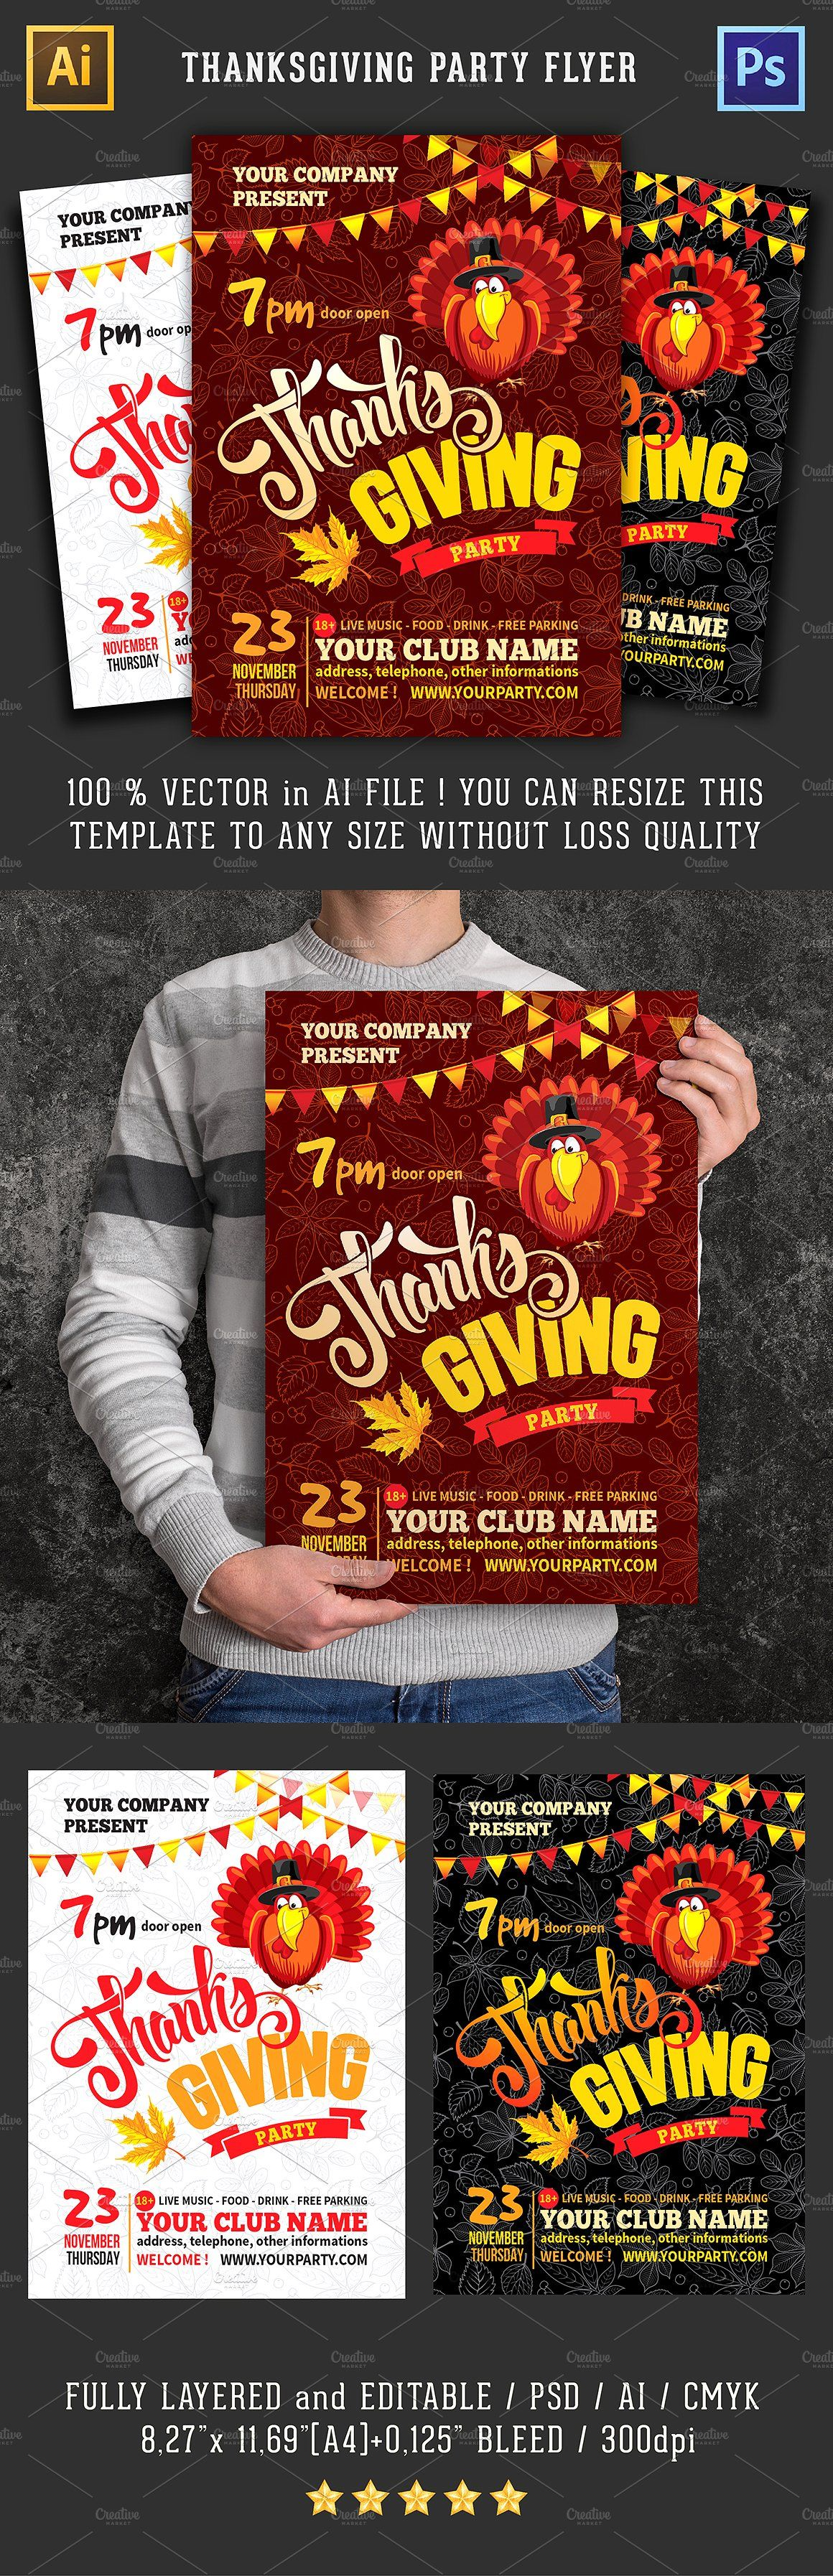 Thanksgiving party flyer template Party flyer, Flyer